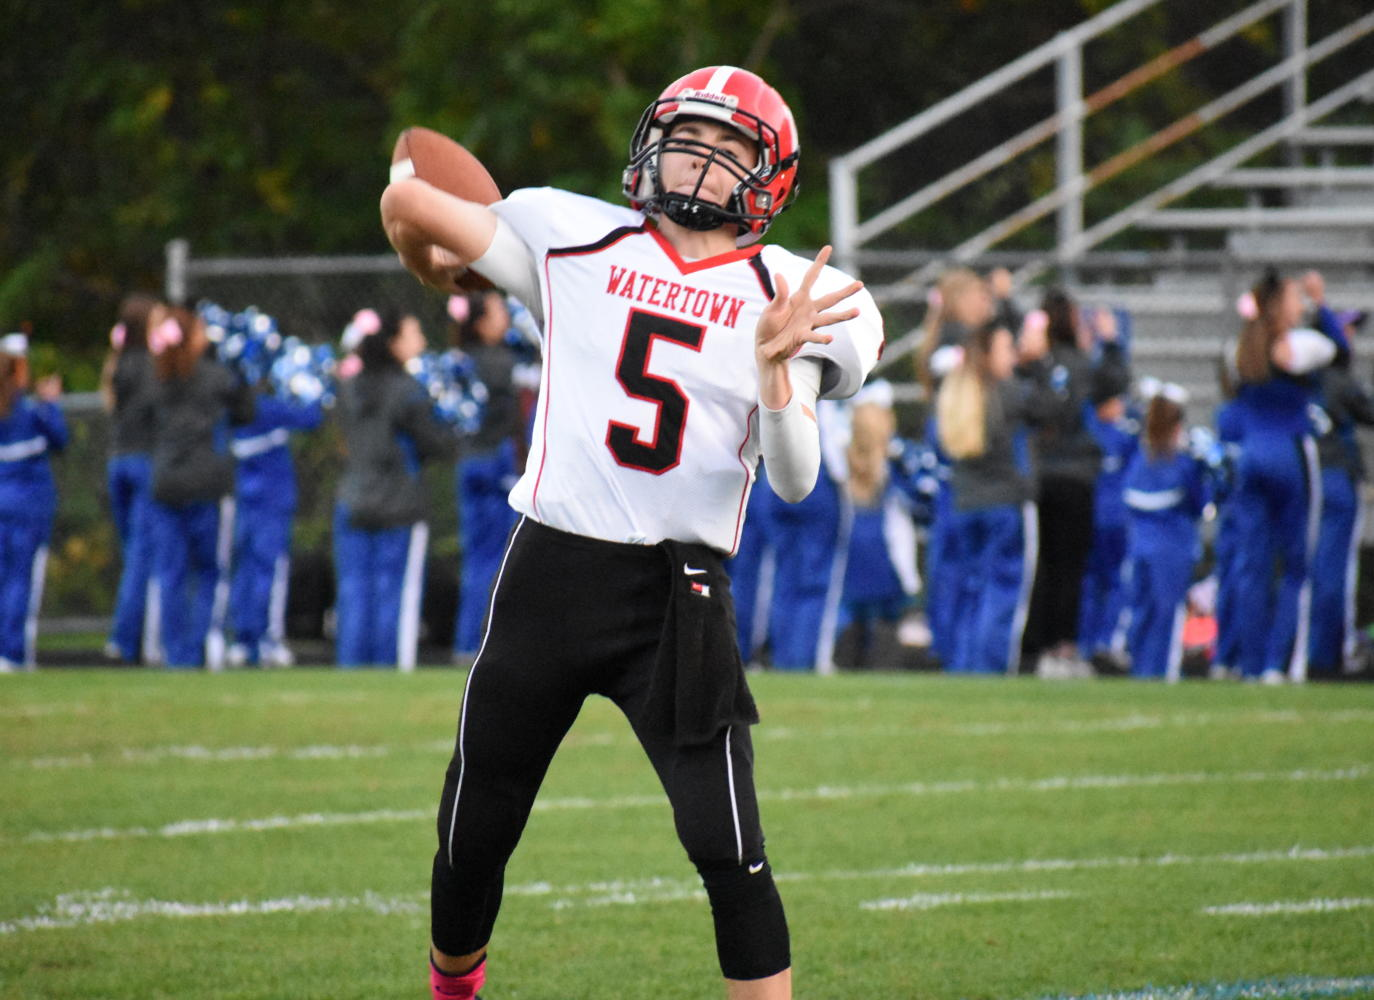 Junior quarterback Nick McDermott warms up before Watertown's game at Stoneham on Oct. 13, 2017.